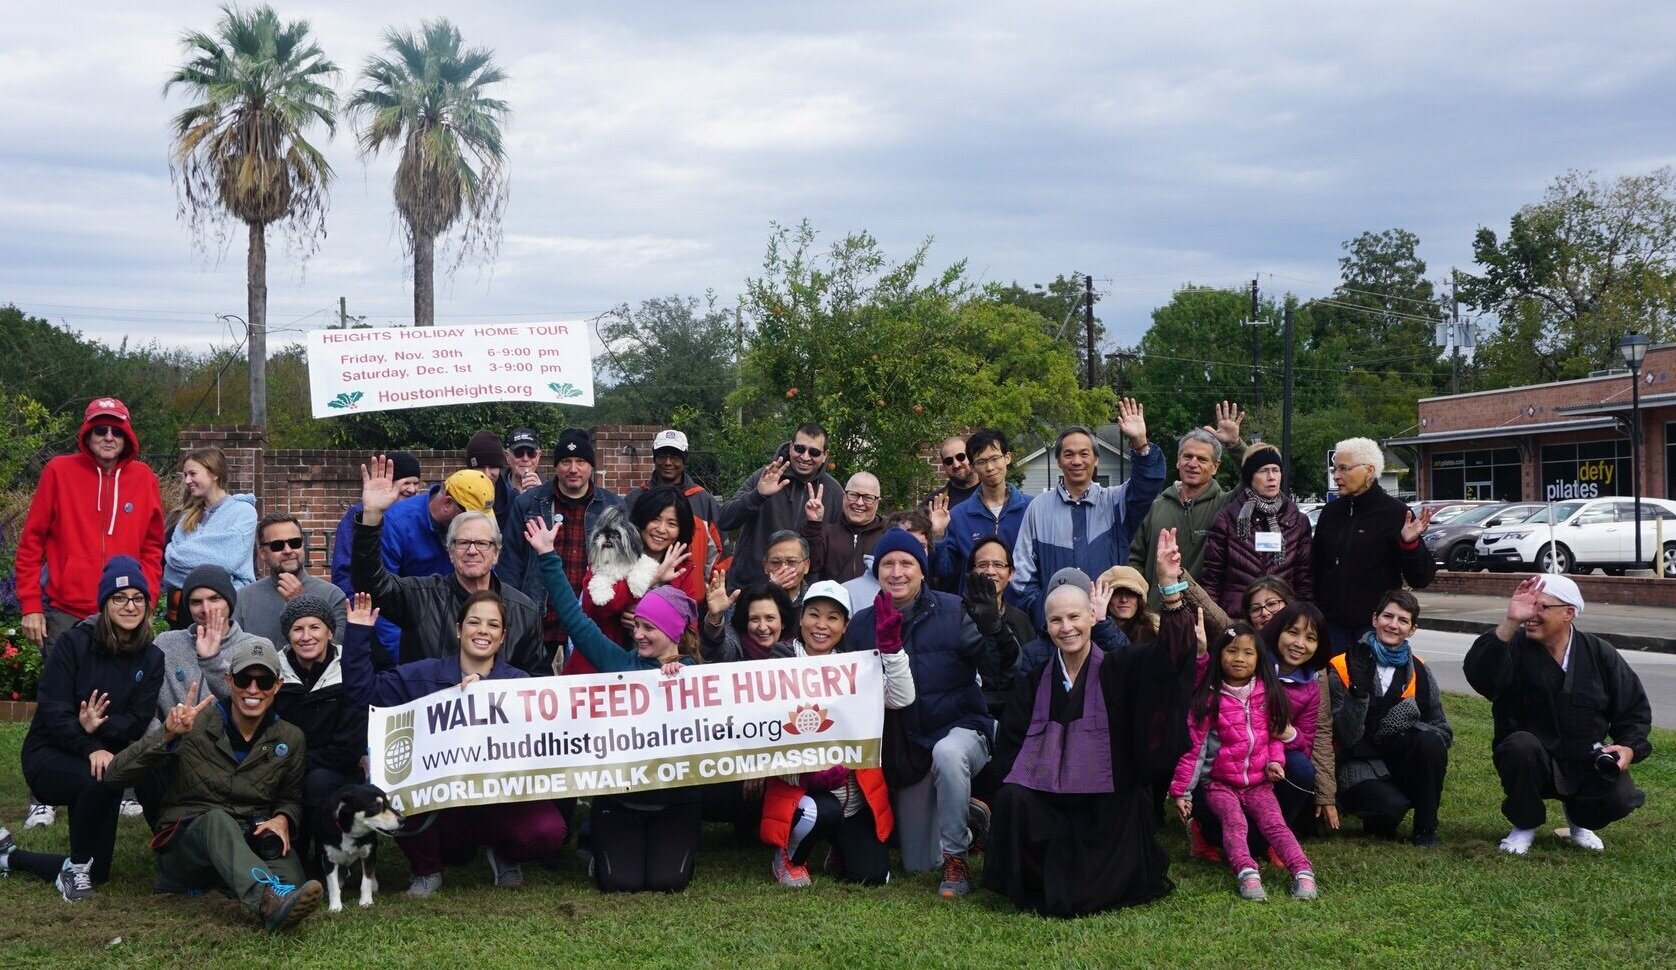 2018 Walk to Feed the Hungry